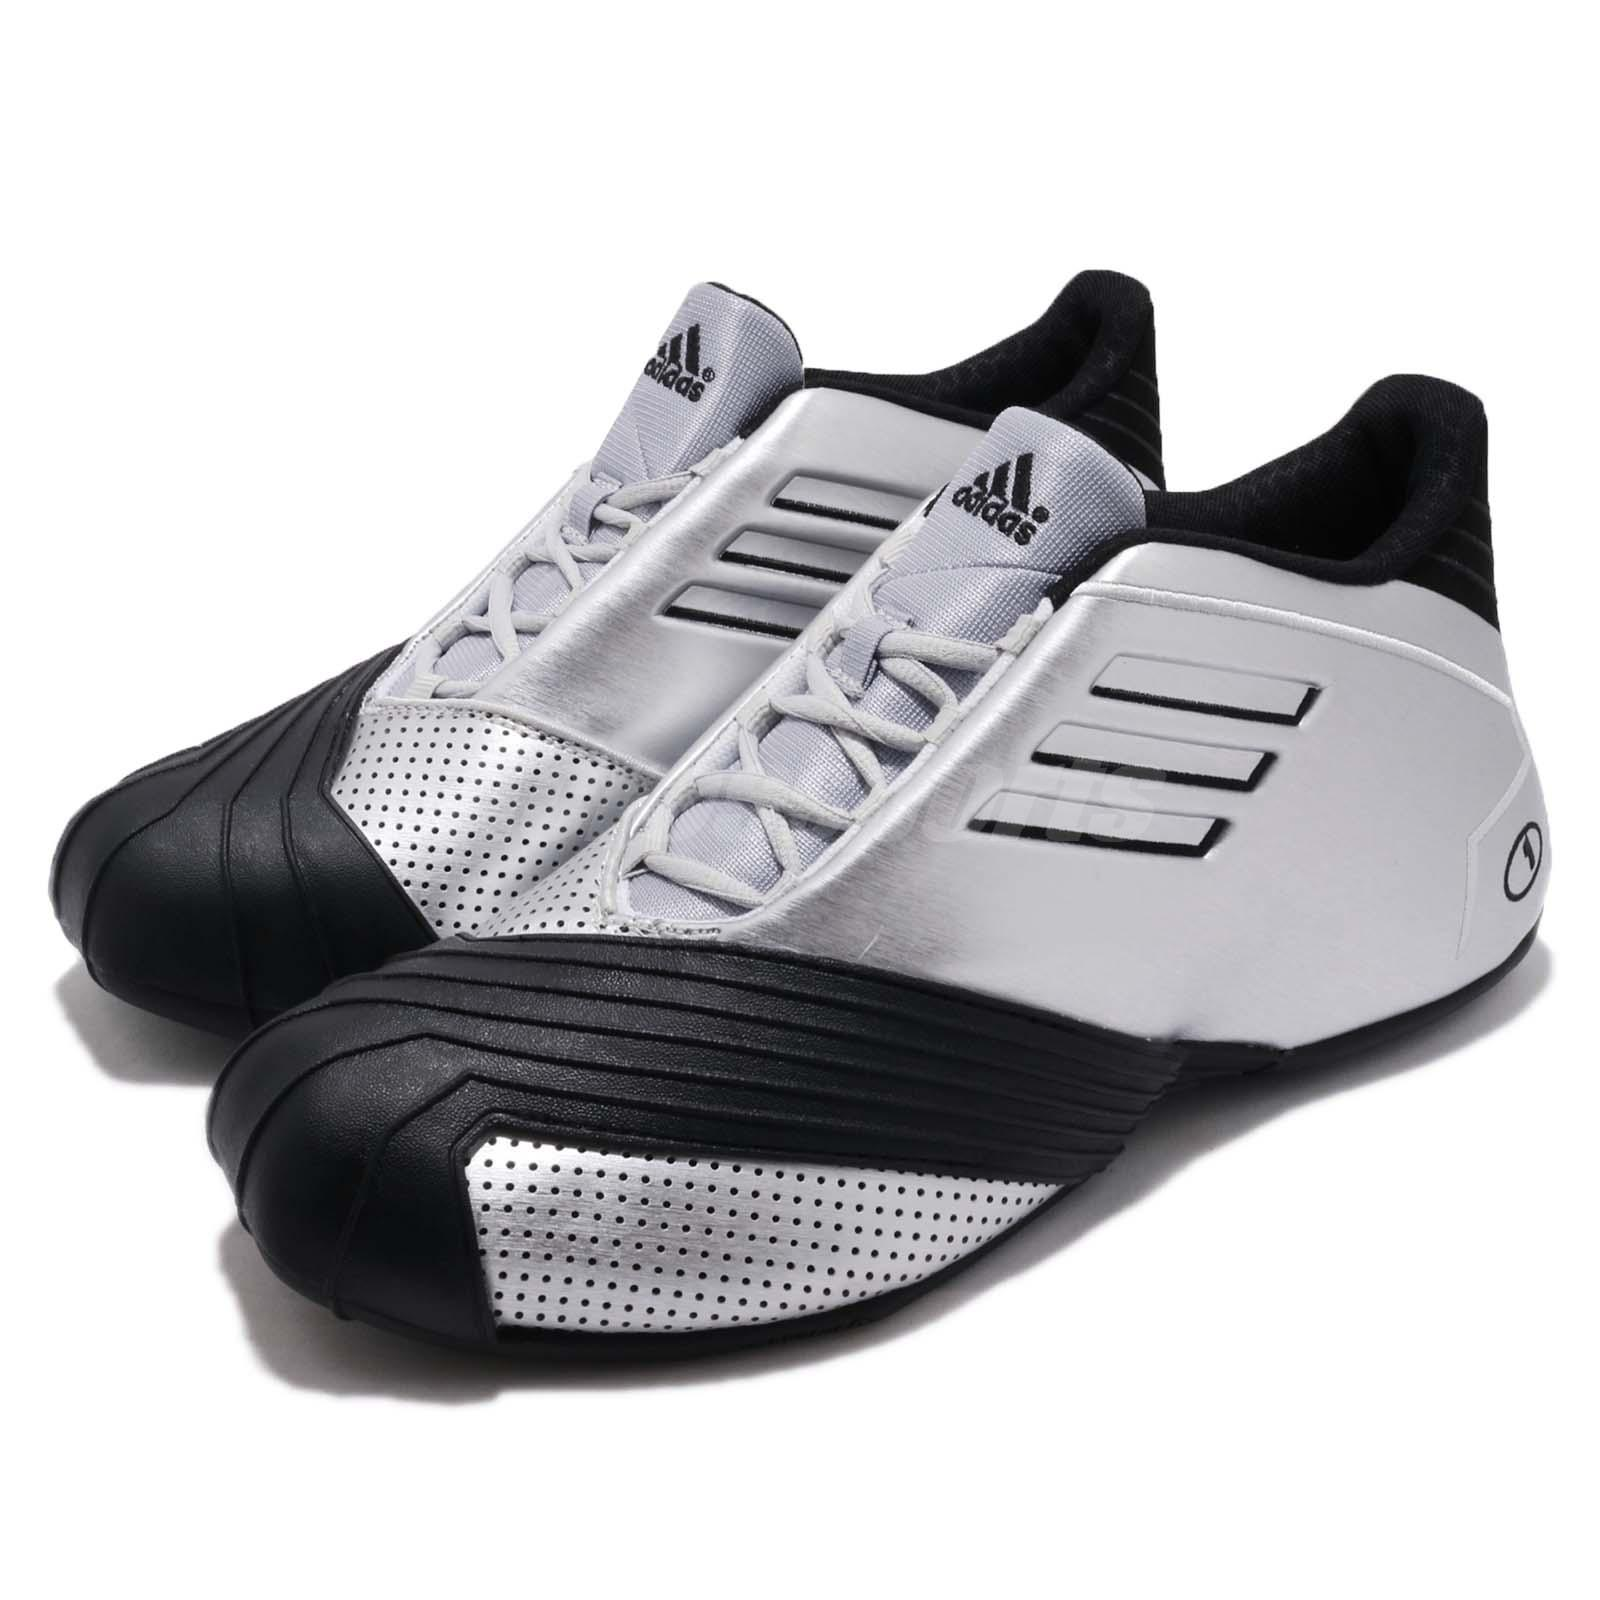 g star shoes size guide